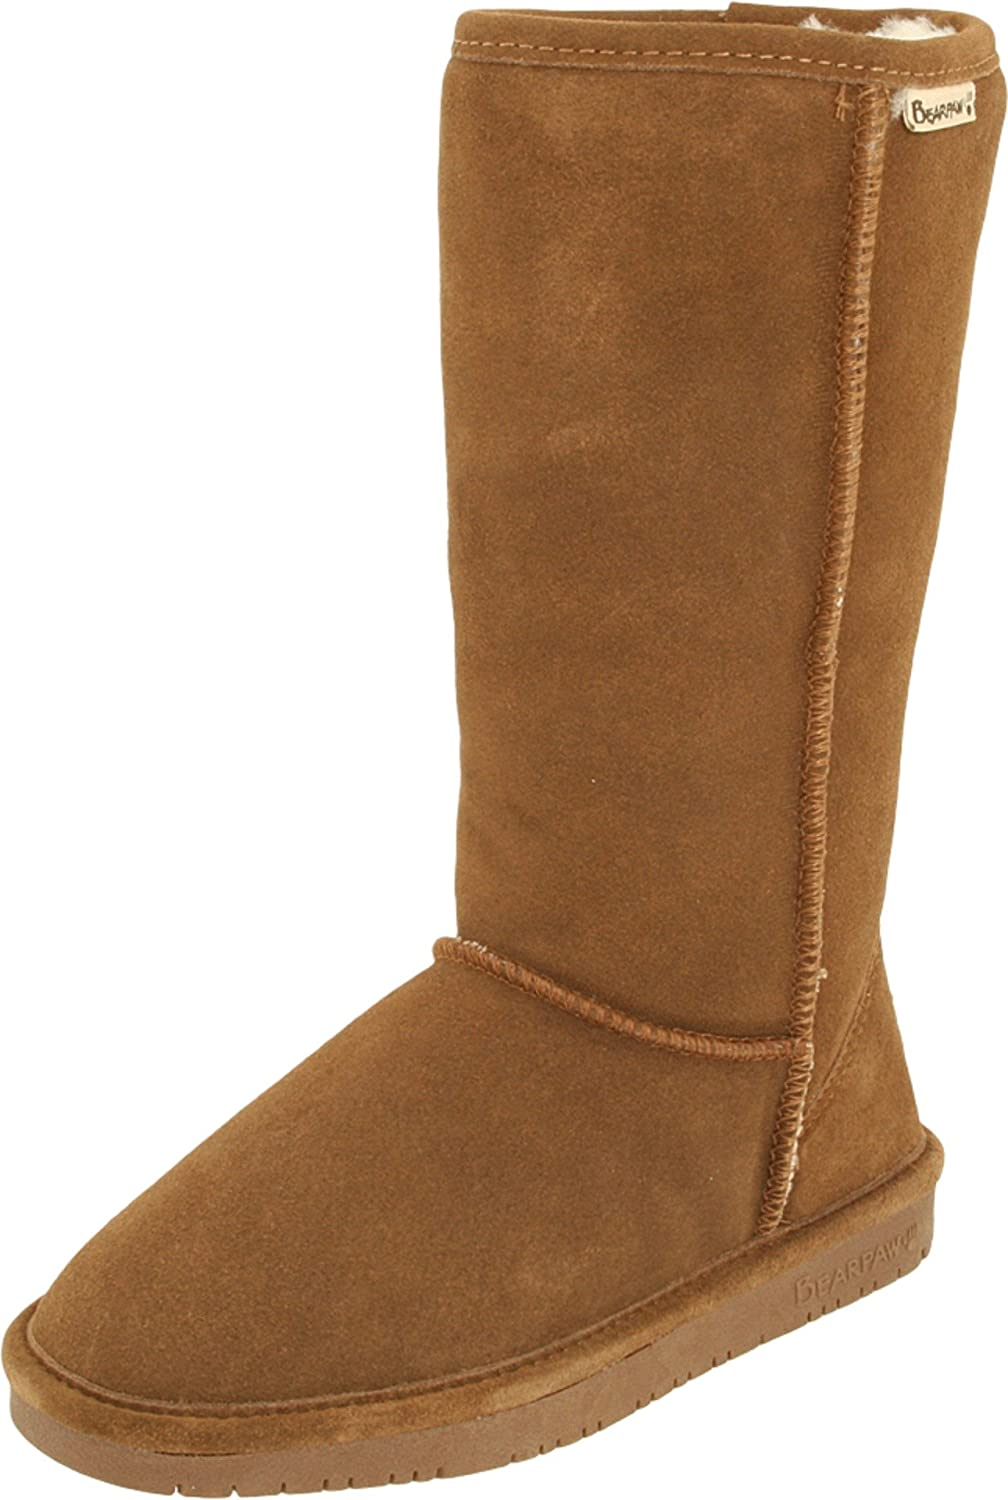 BEARPAW Women's Emma Tall Mid Calf Boot B077R7SDB2 42 M EU / 11 B(M) US|Hickory